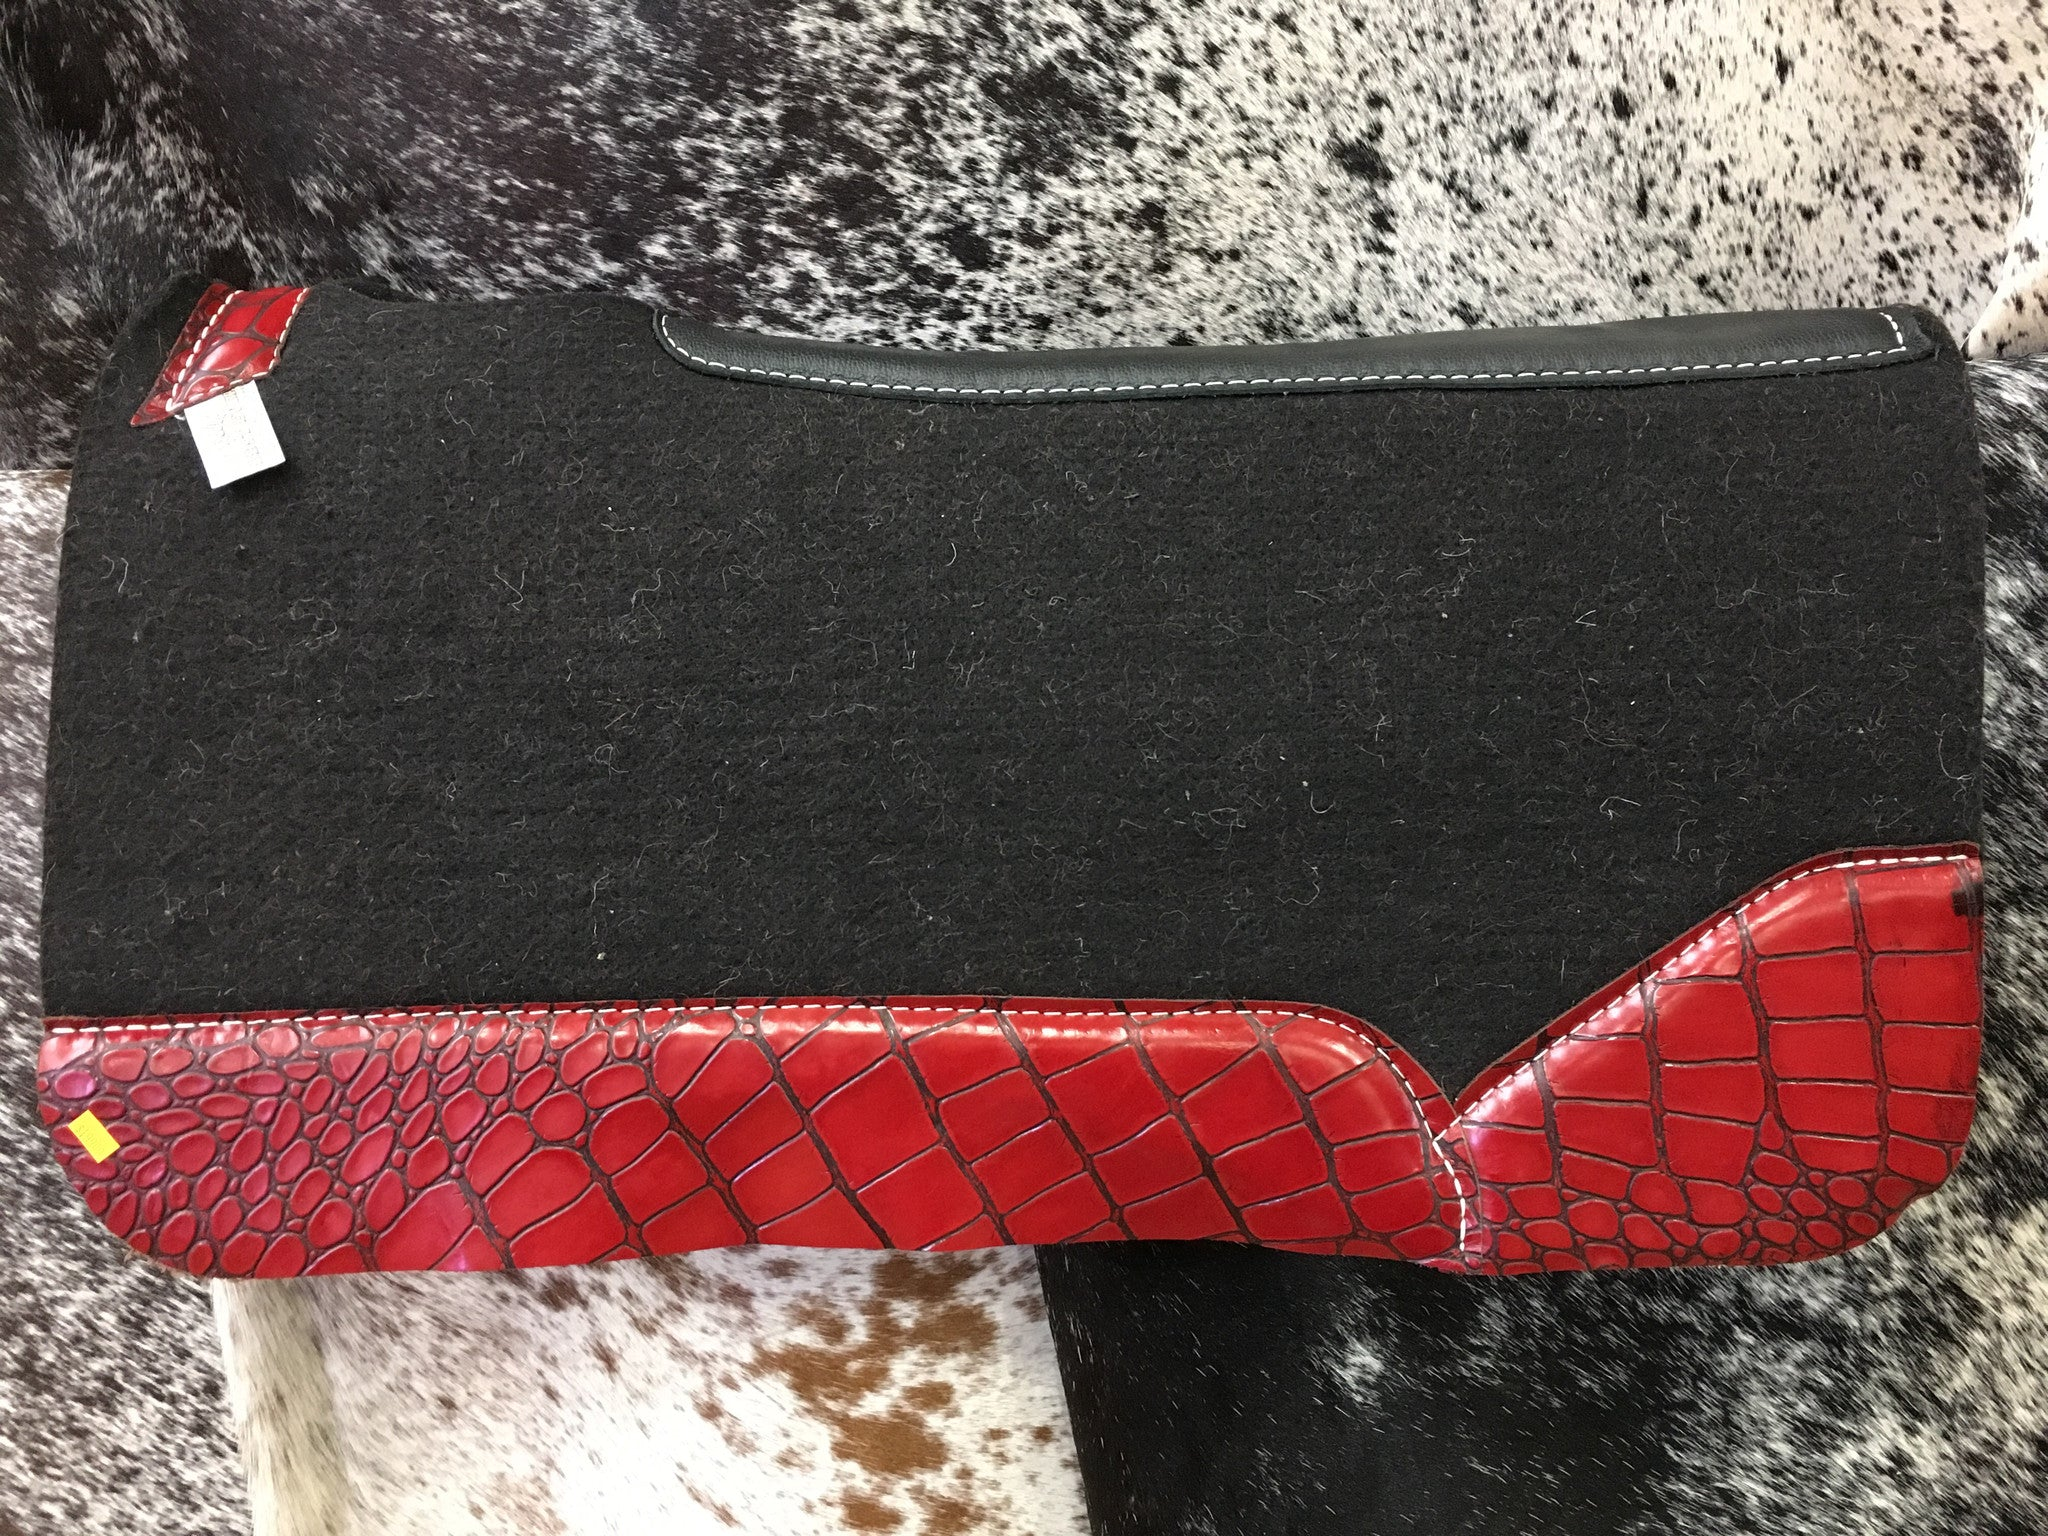 Best ever saddle pad with red monster gator wear leathers.